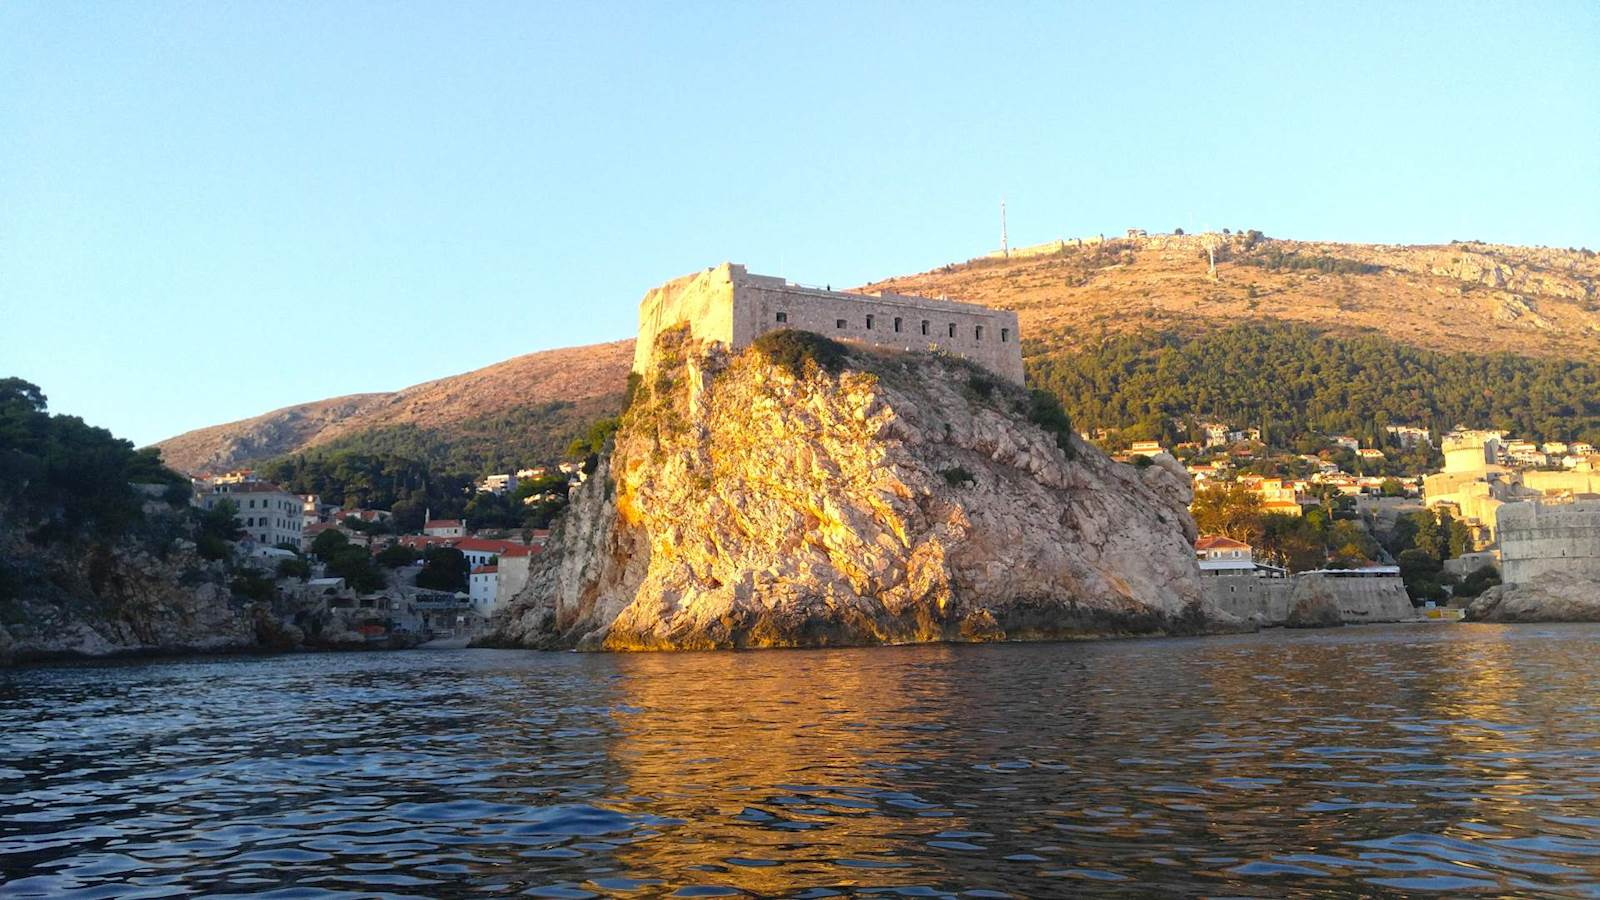 -images-excursions-elaphite-islands-speed-boat-excursion-zy-02-private-boat-tour-dubrovnik-elafiti.jpg